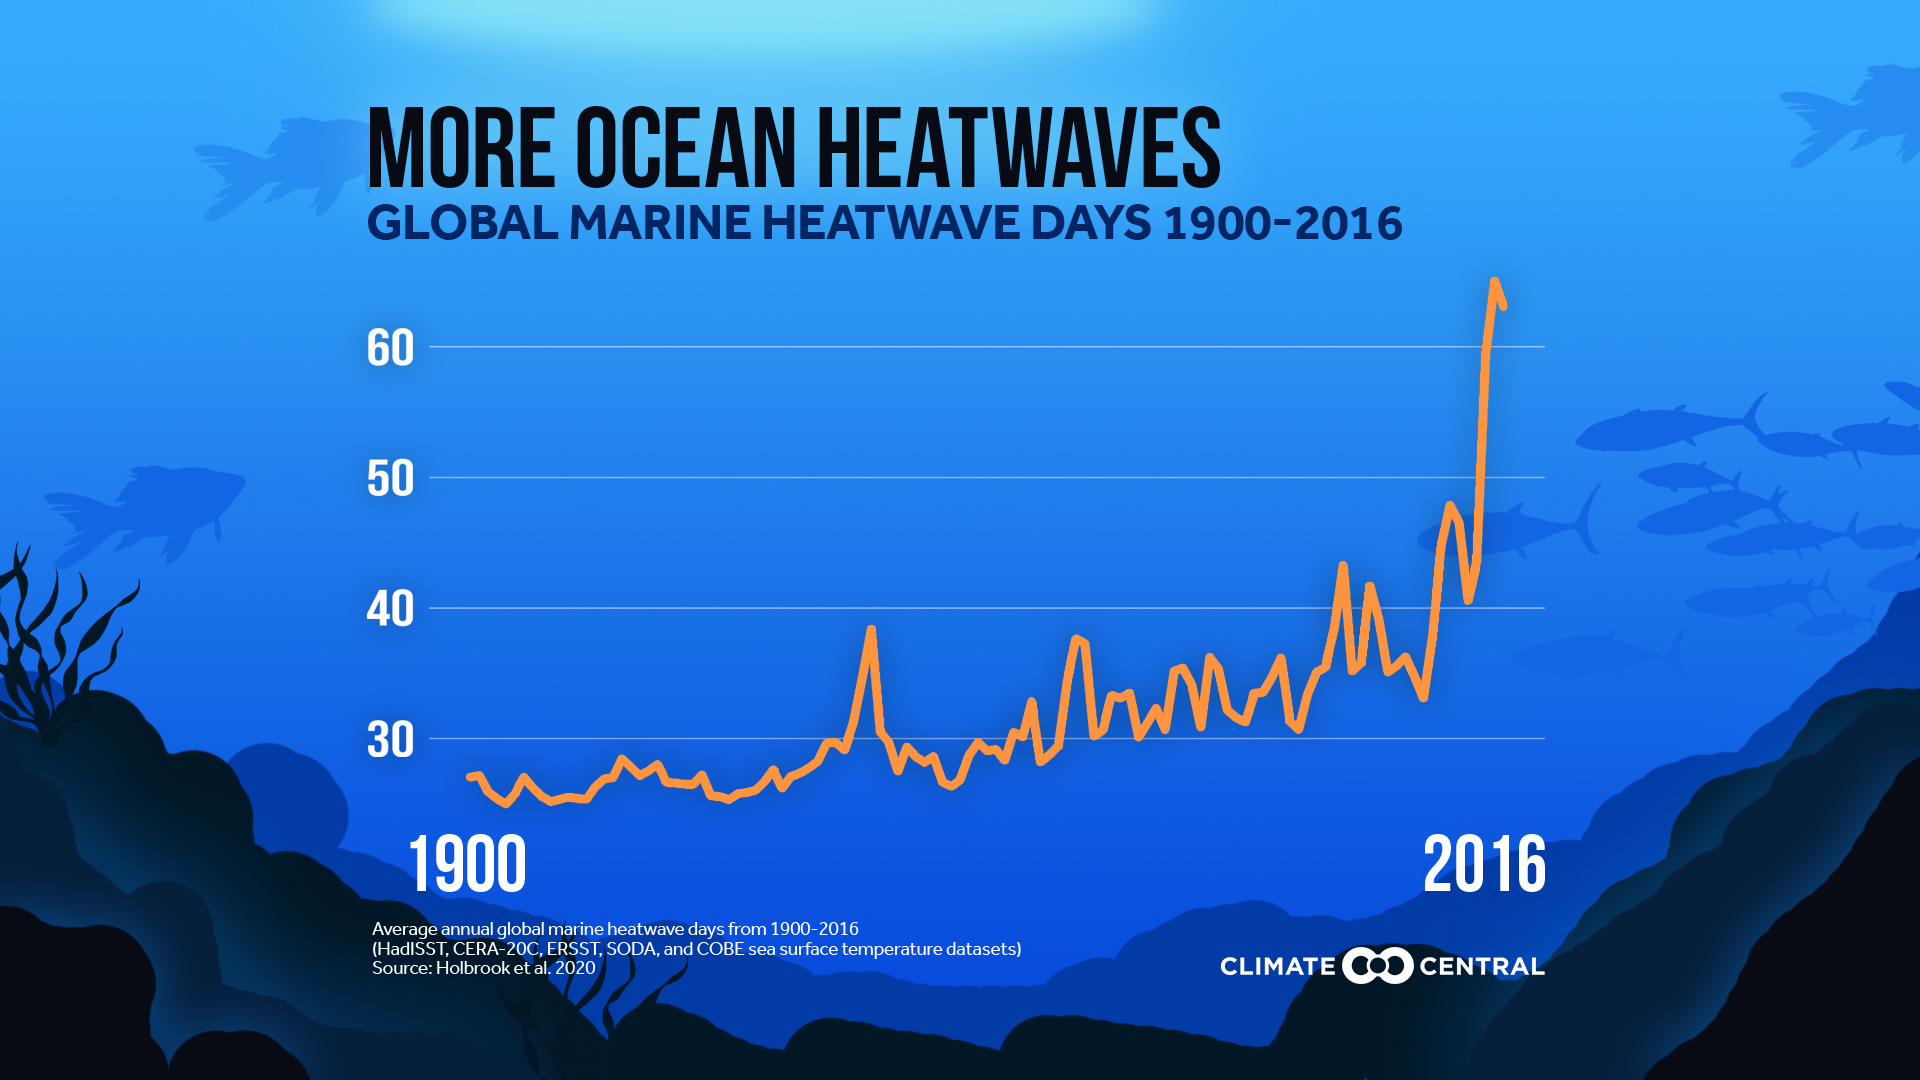 Fevers are plaguing the oceans -